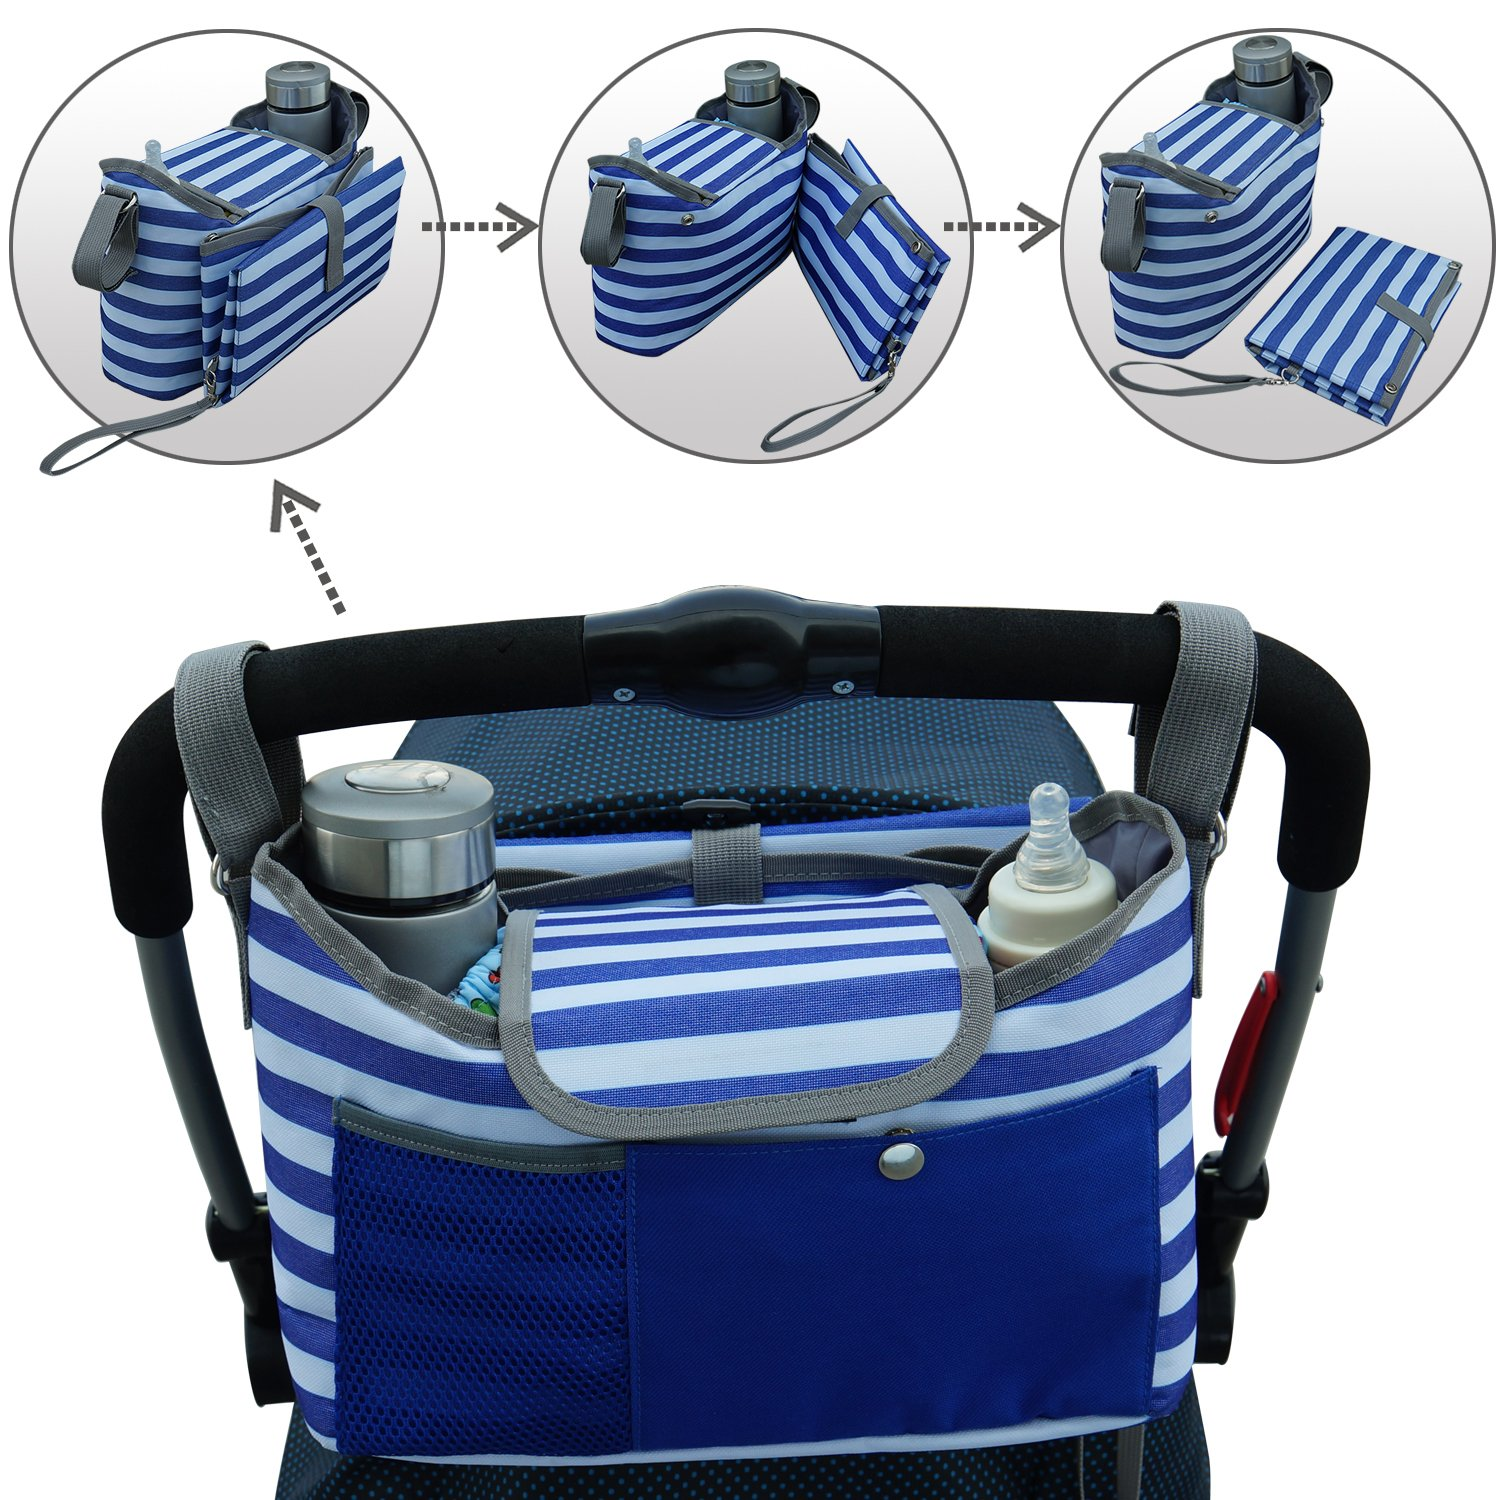 BlueSnail Stroller Organizer with Bonus Changing Pad (Blue), Premium Deep Cup Holders, Extra-Large Storage Space for iPhones, Wallets, Diapers, Books, Toys, iPads